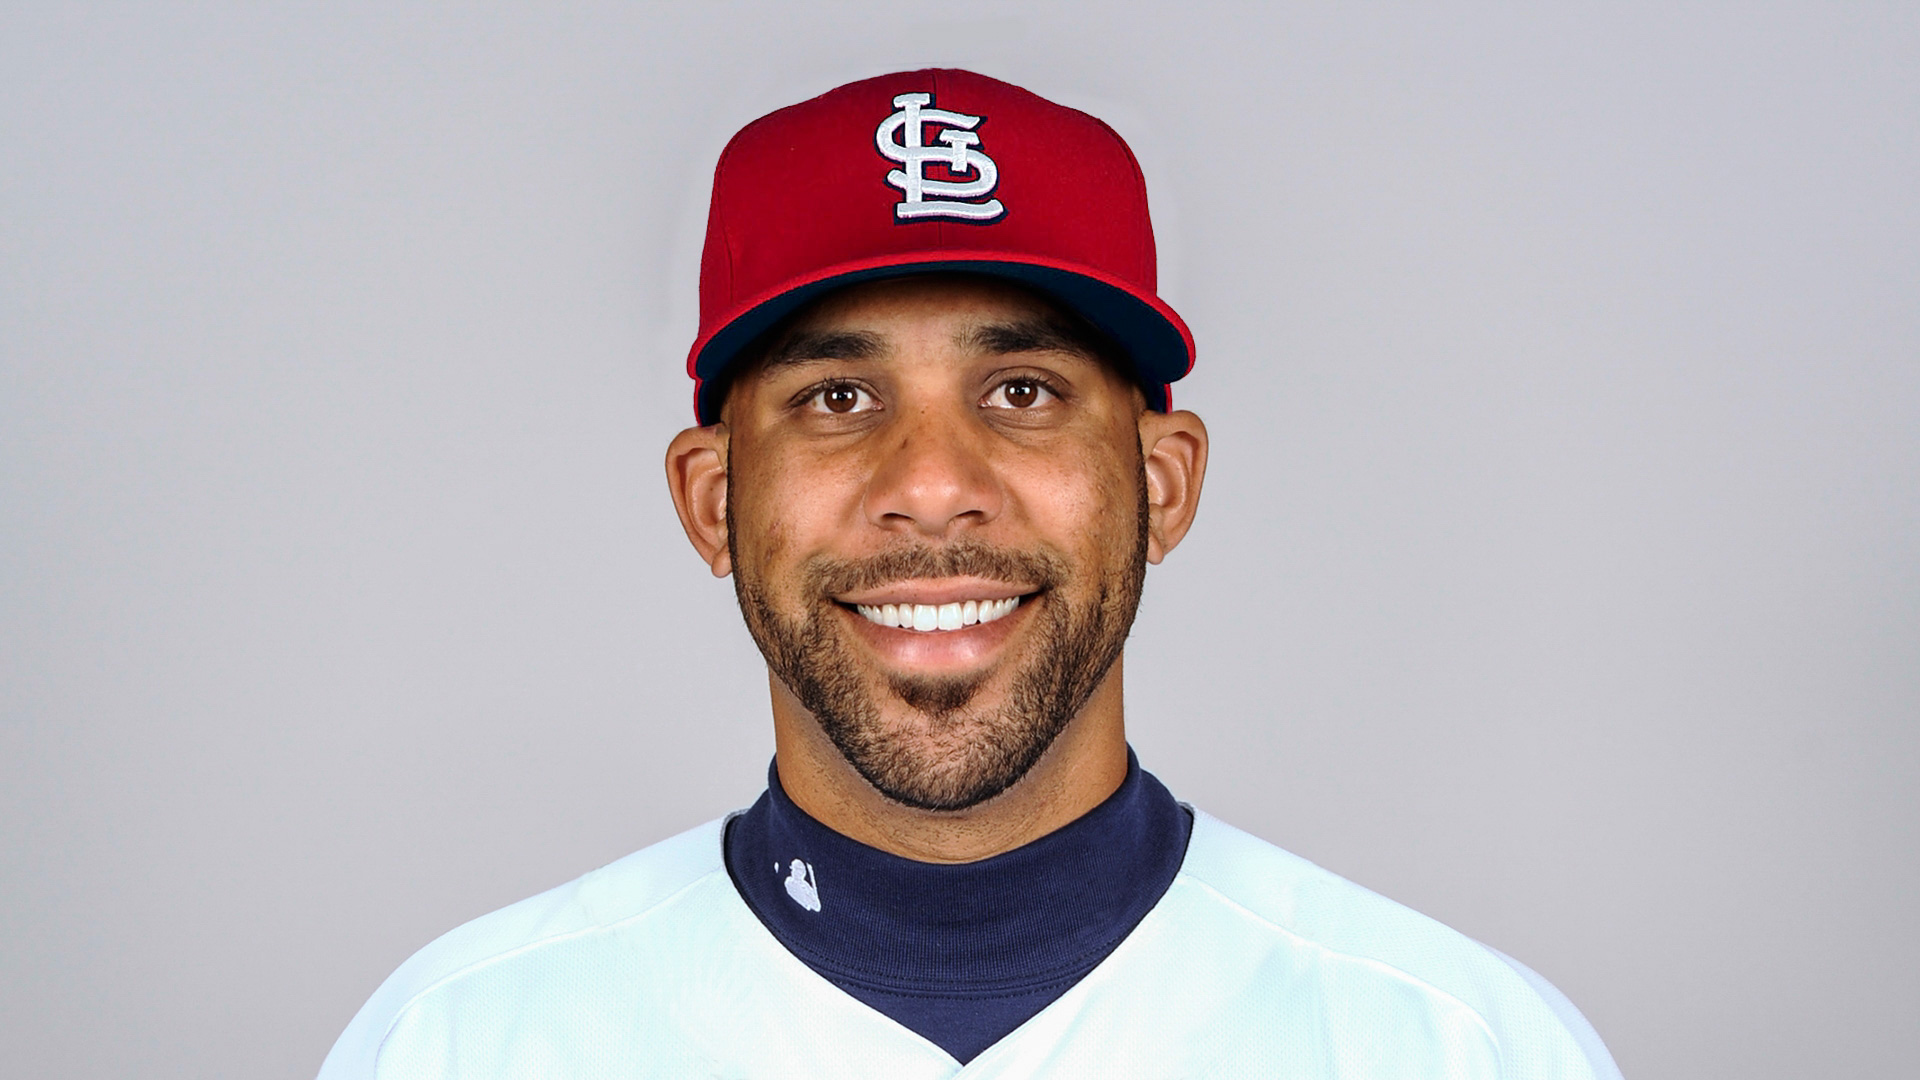 Mlb free agents nine best destinations for david price sporting